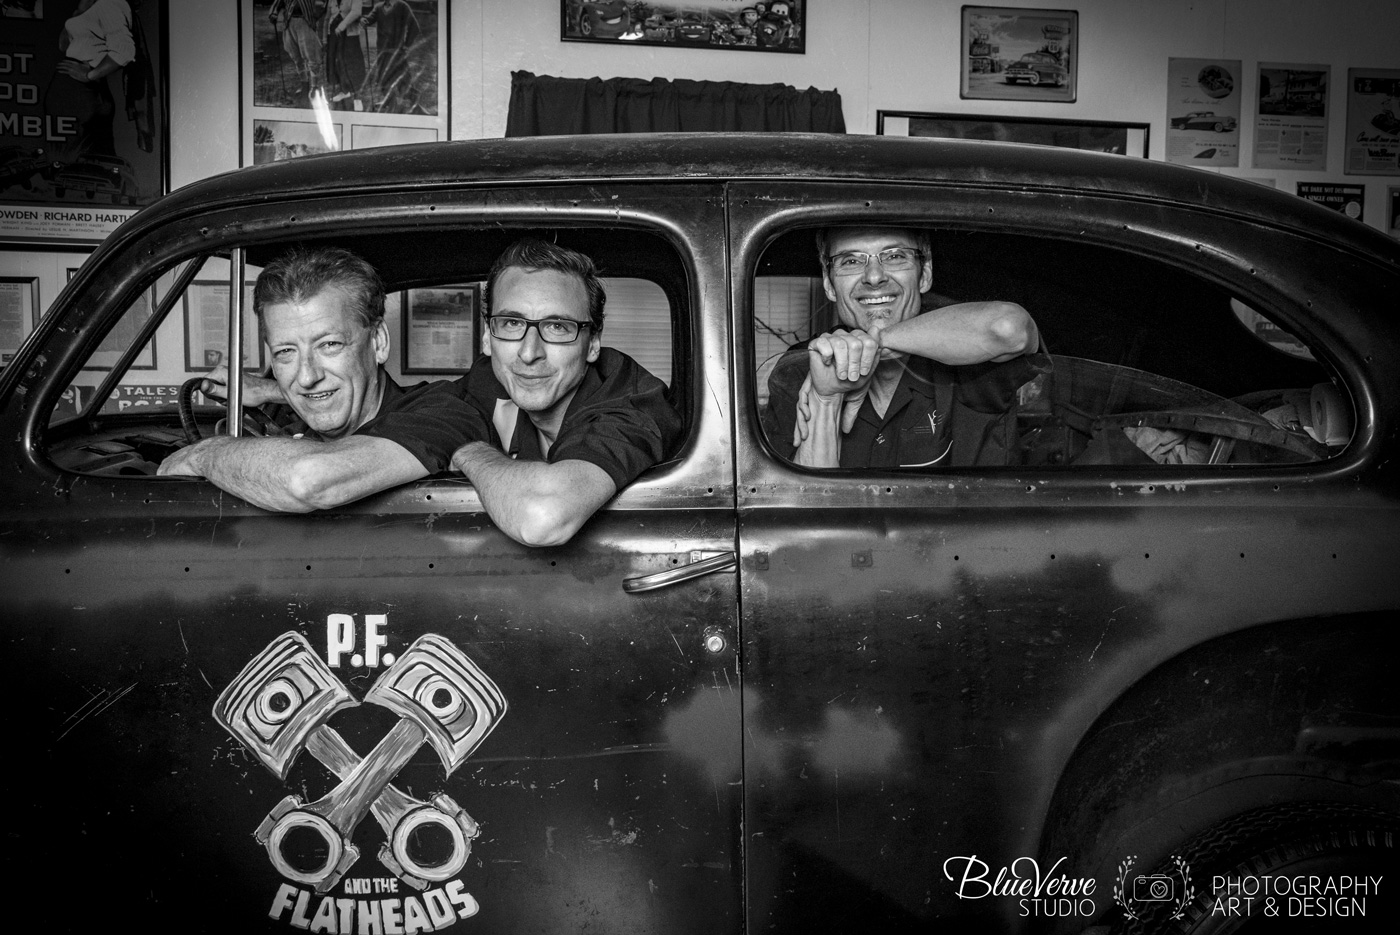 PF and the Flatheads Band Photography